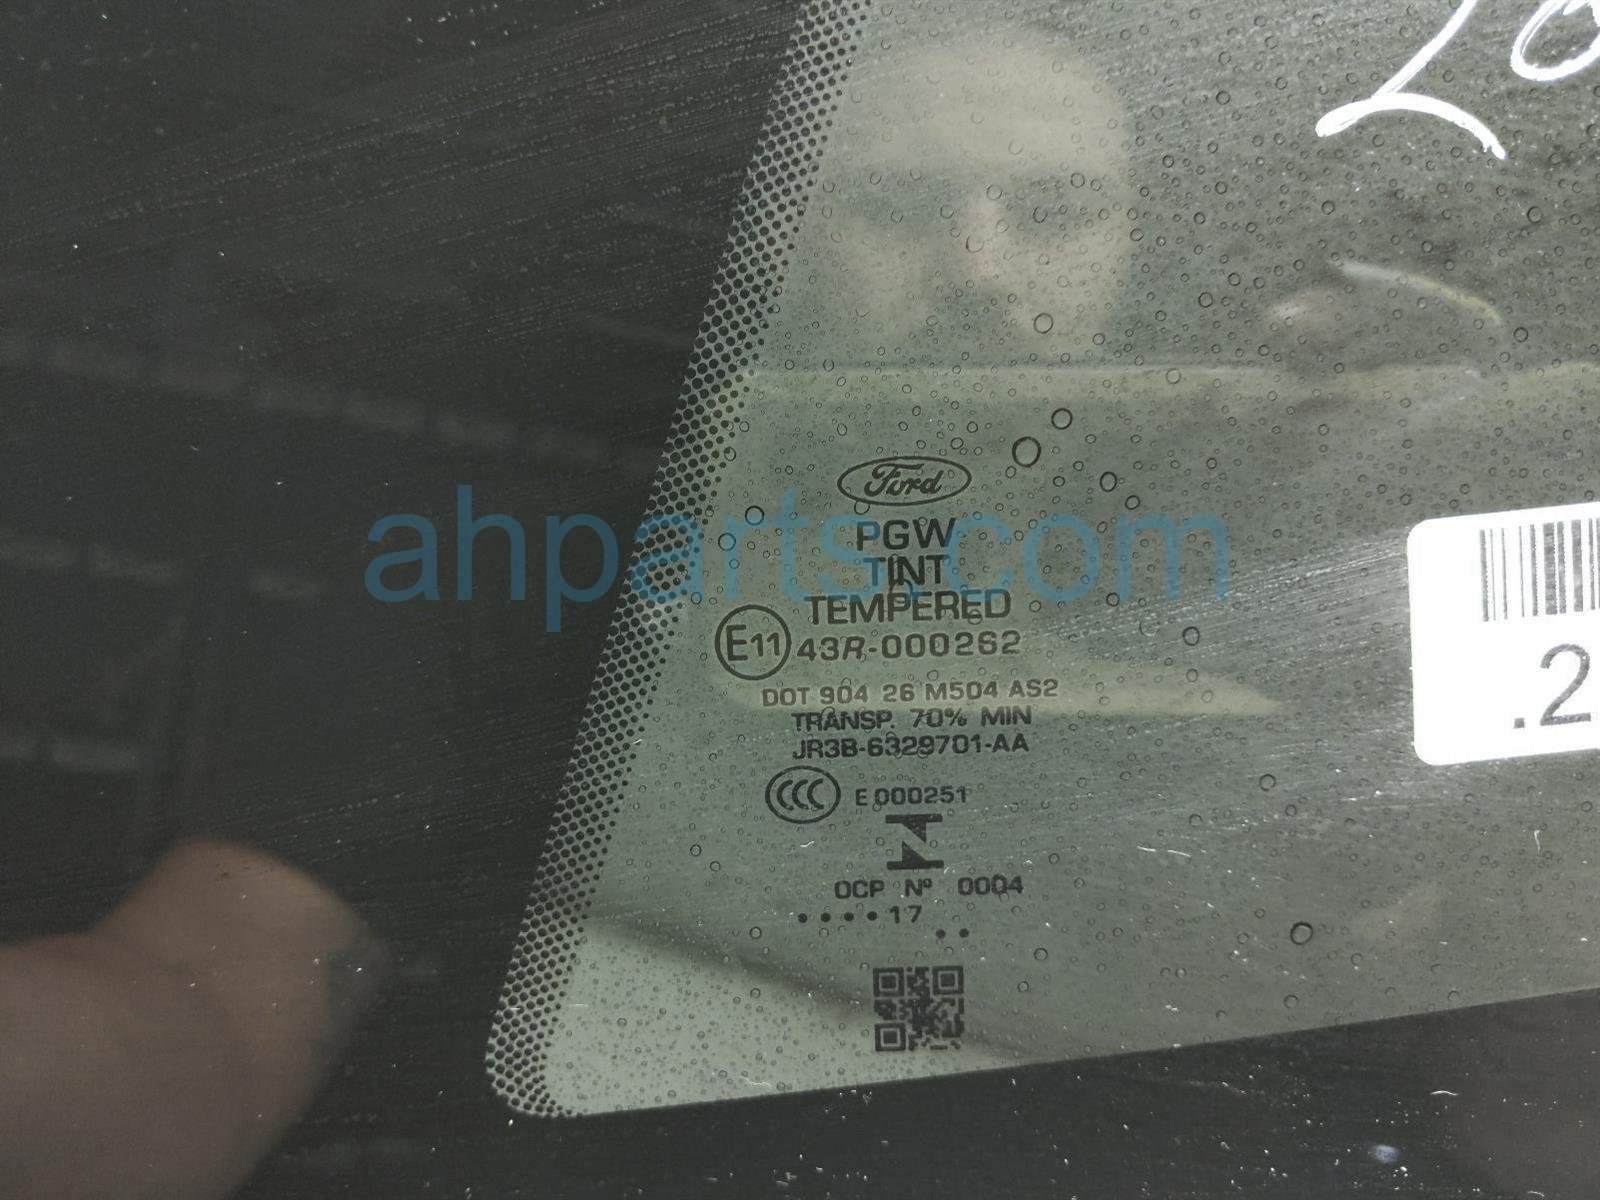 2017 Ford Mustang Driver Quarter Window Glass JR3Z 6329711 A Replacement